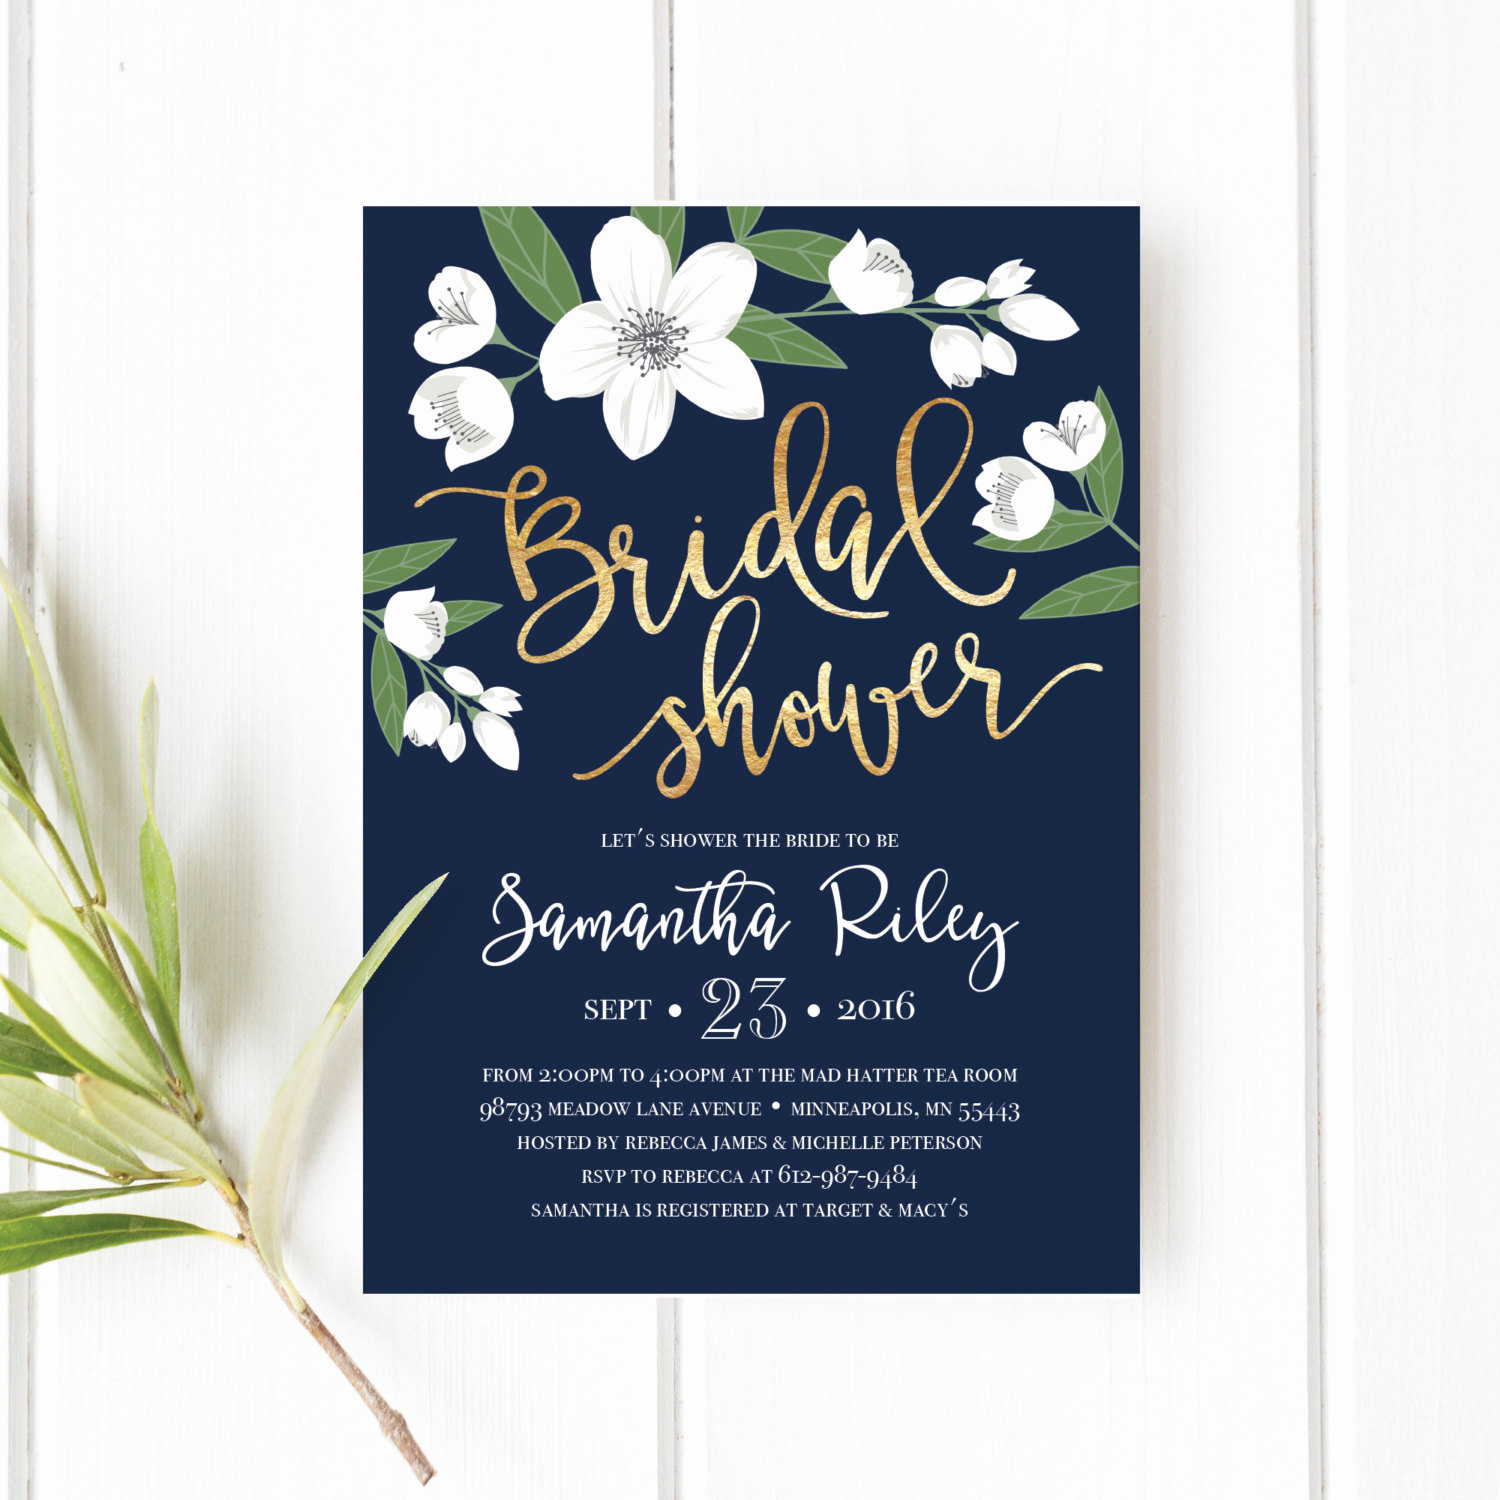 Printable Bridal Shower Invitation Templates Unique Printable Bridal Shower Invitation Template Wedding Shower